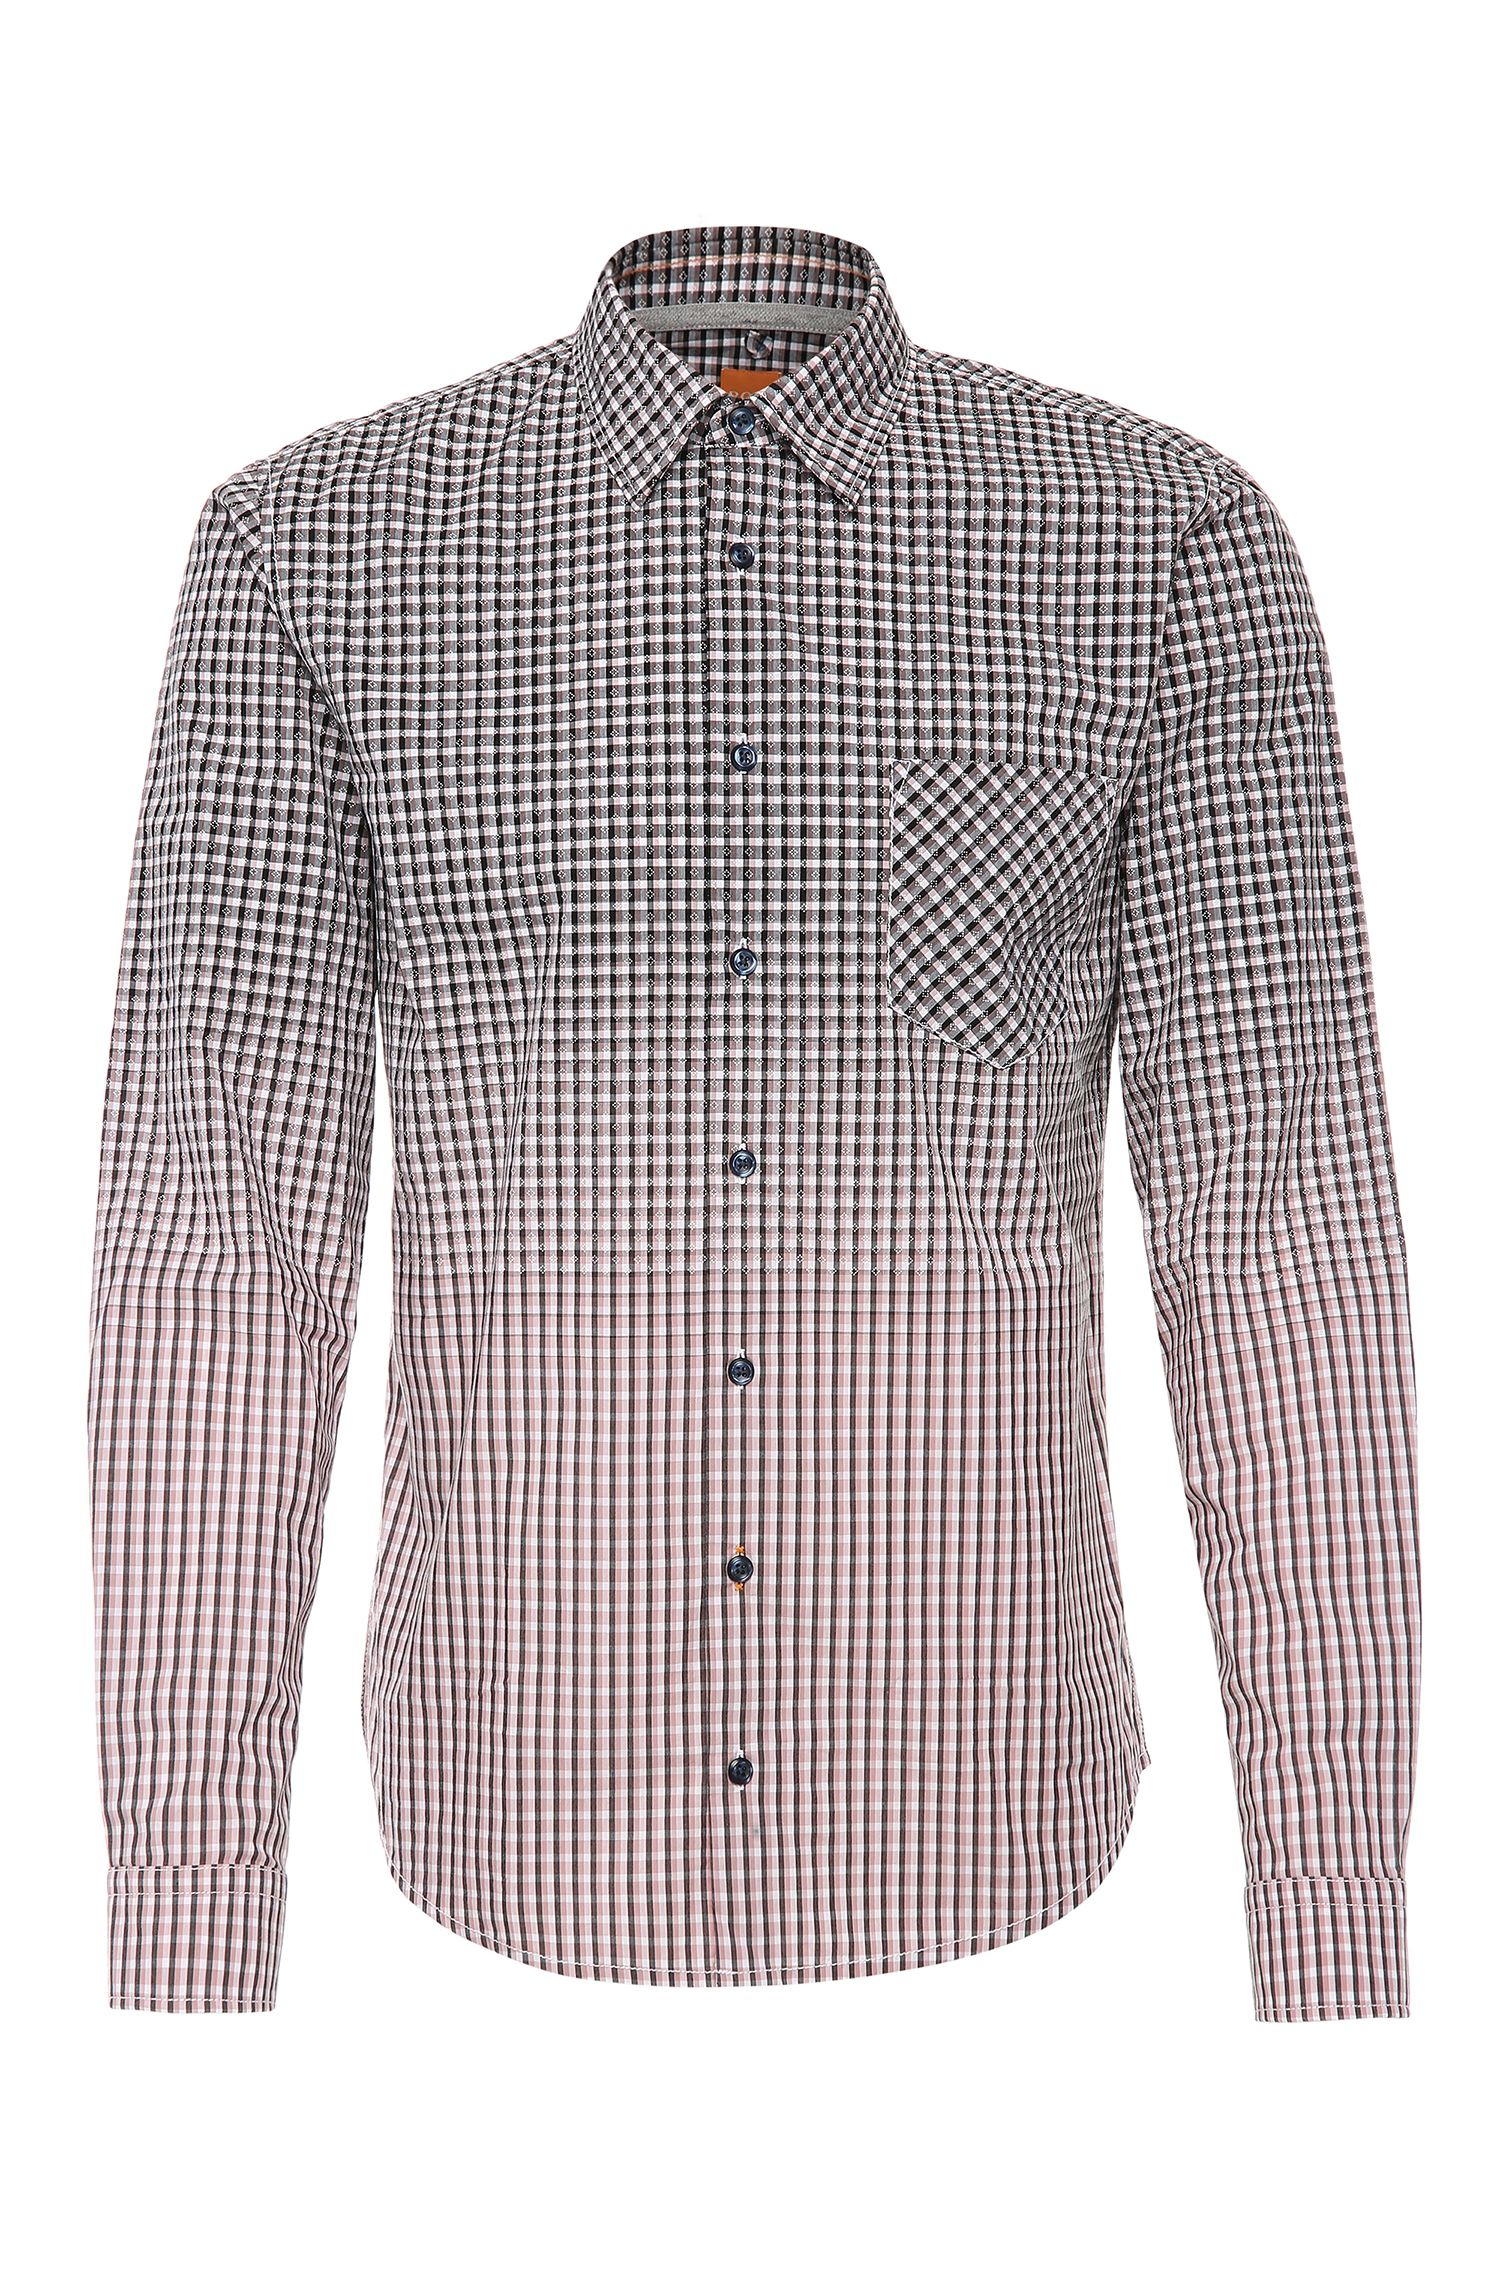 'EnameE' | Slim Fit, Cotton Ombre Printed Button Down Shirt